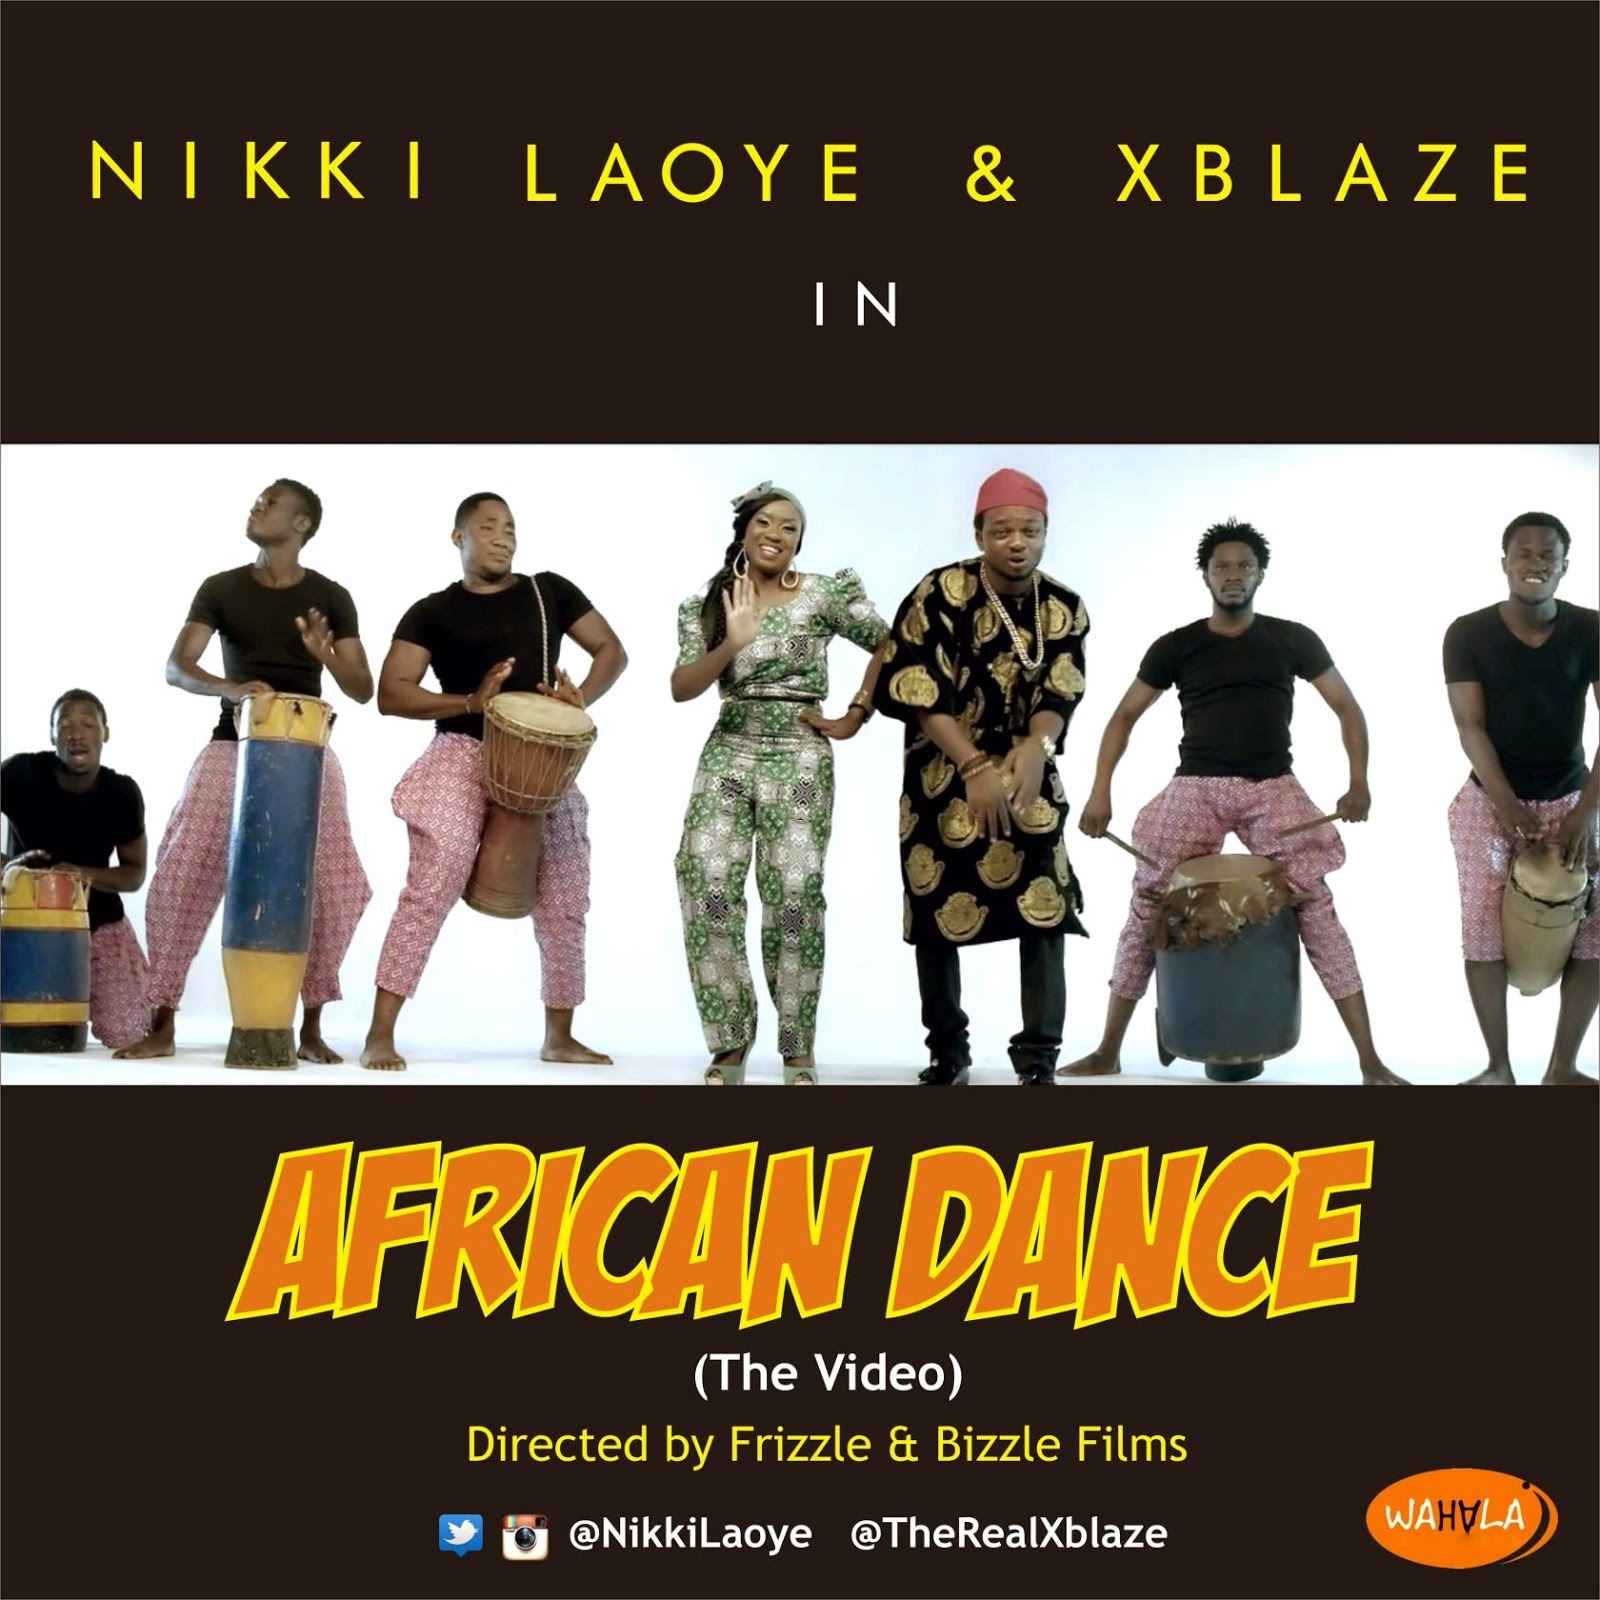 Watch Nikki Laoye & Xblaze - African Dance Video